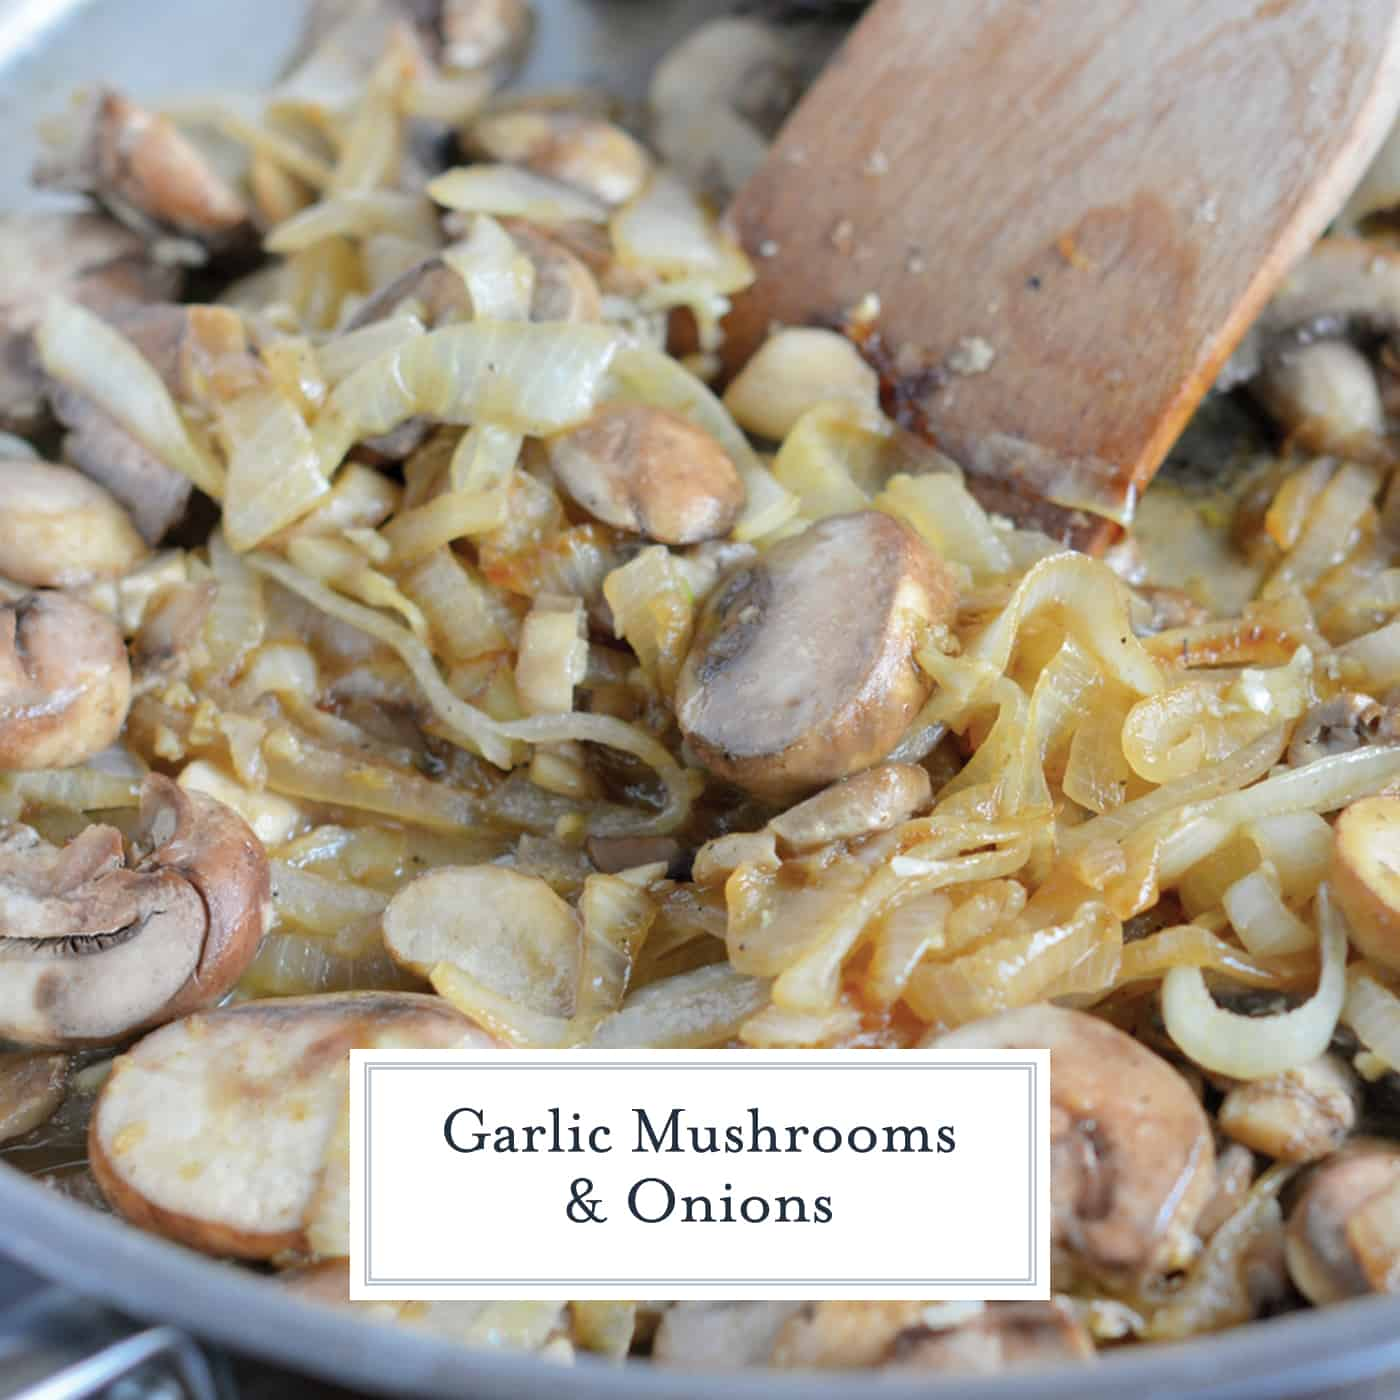 Garlic Mushrooms and Onions are a tasty side dish for any meal. Mushrooms and onions sauteed with fresh garlic and maitre d'hotel butter. #garlicmushrooms #easysidedishes www.savoryexperiments.com